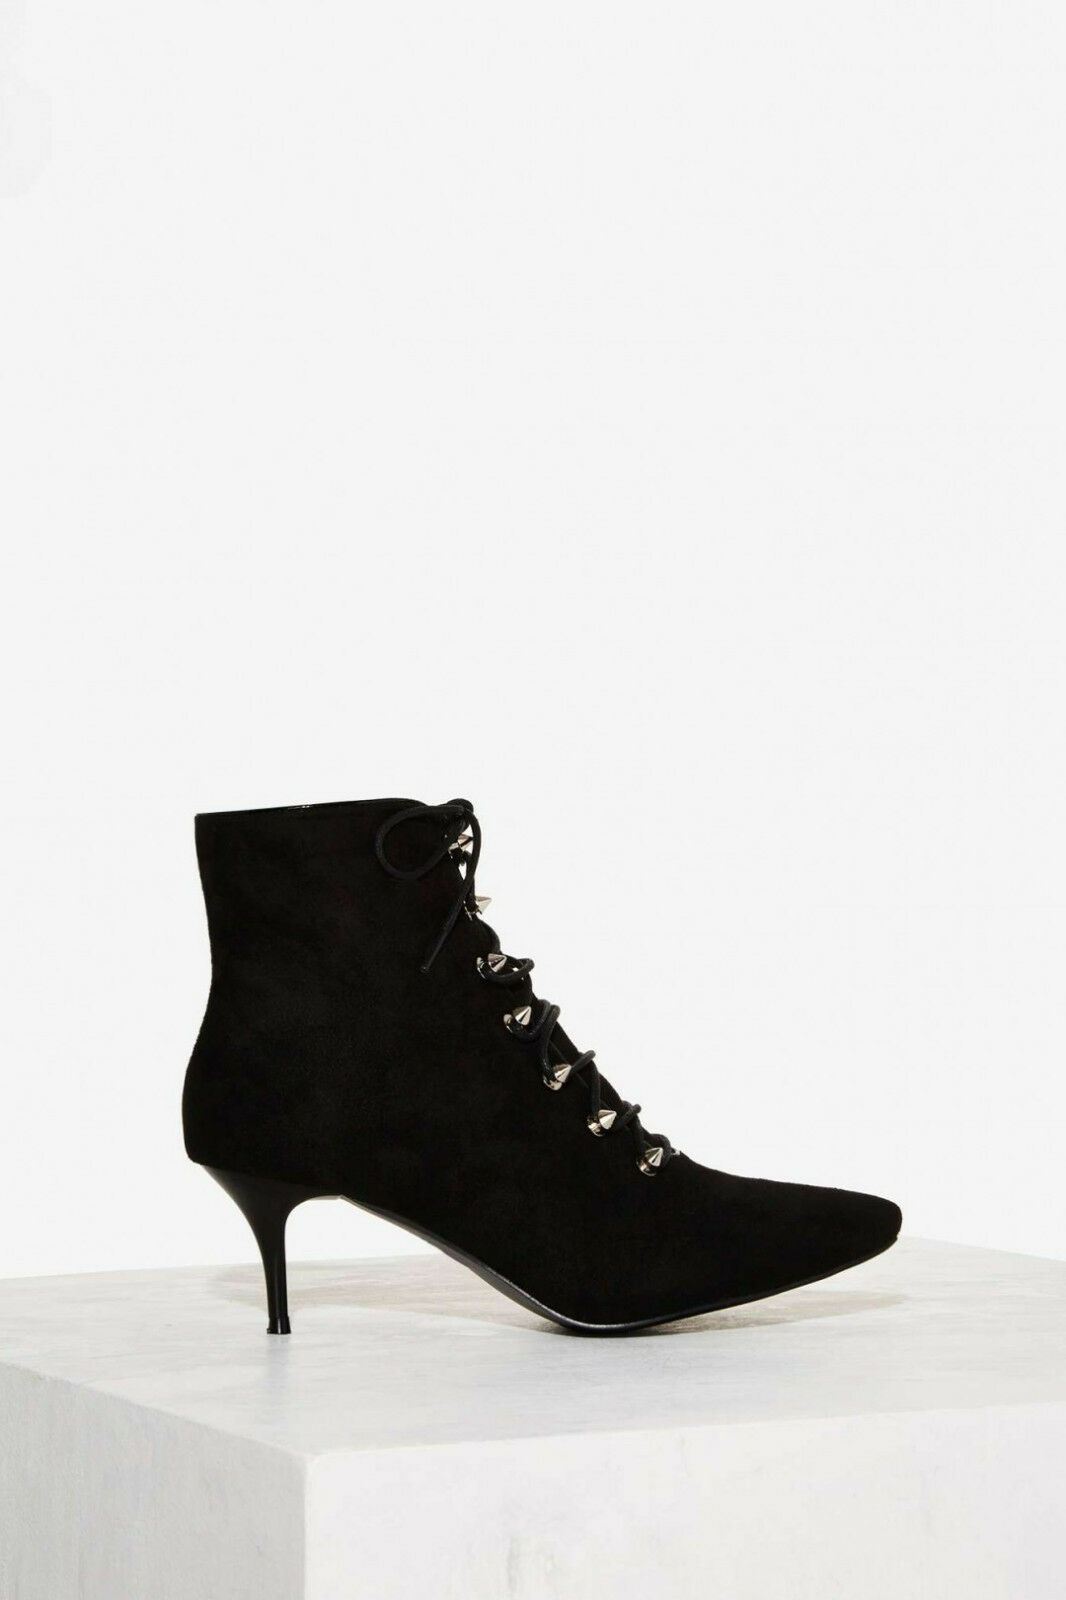 Negozio 2018 NEW NASTY GAL nero KITTEN OUT OUT OUT OF TEN HEELS ANKLE stivali SZ 6.5  perfezionare